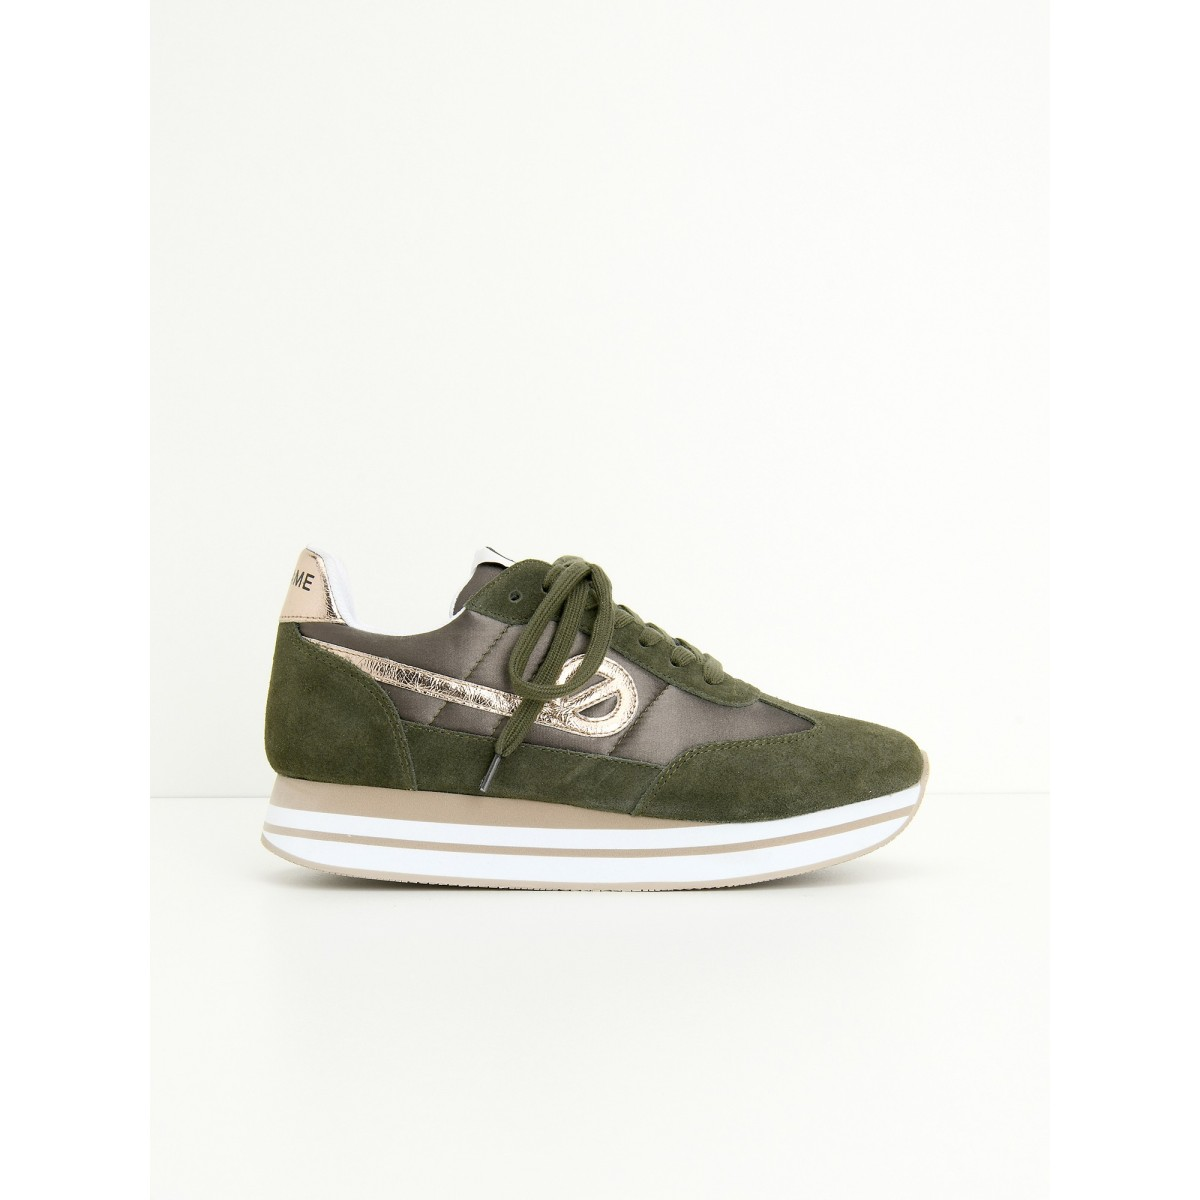 No Name EDEN JOGGER - BEAM/SUEDE - FOREST/FOREST